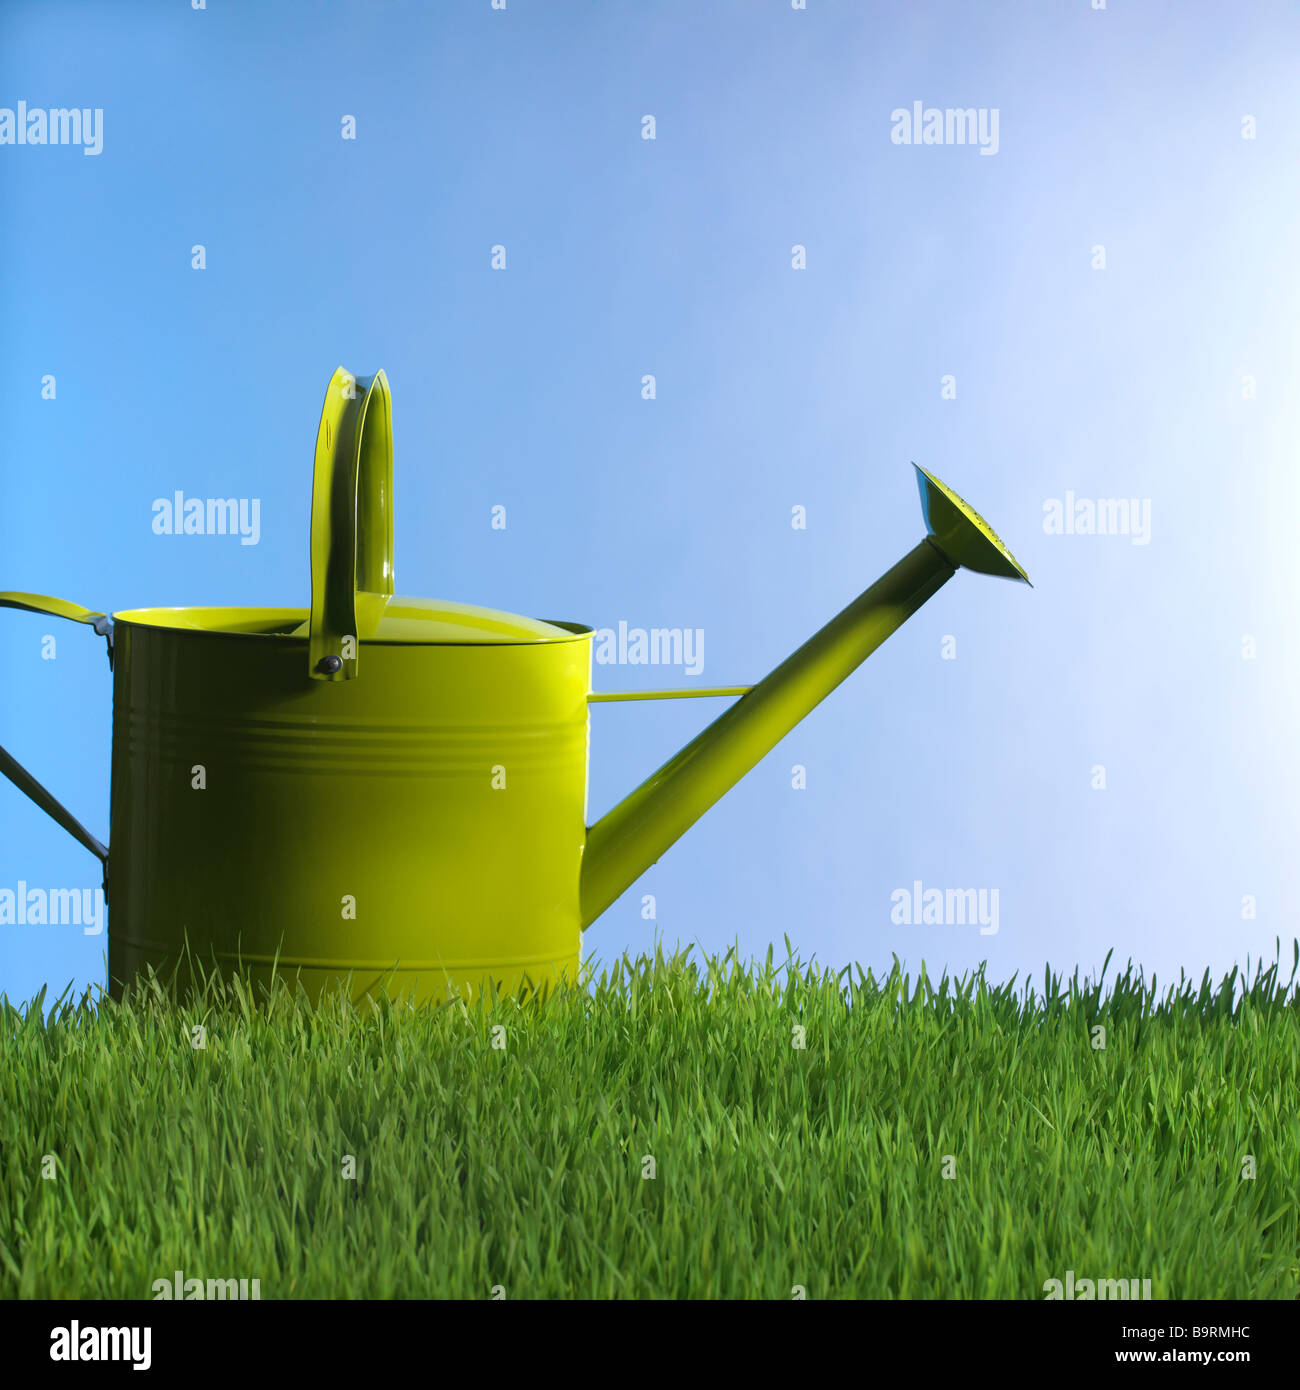 green watering can in grass - Stock Image